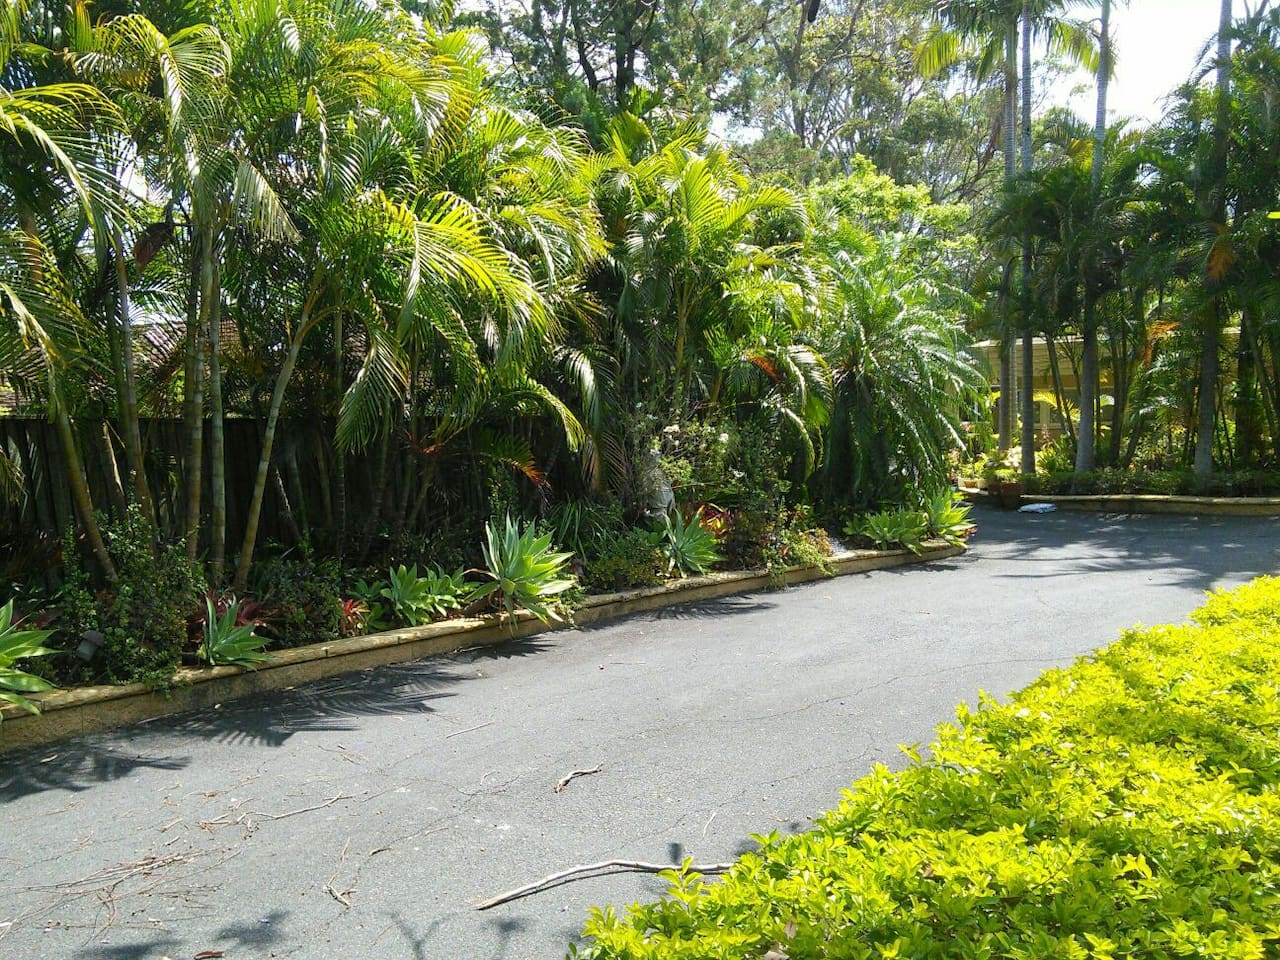 Driveway into gated property